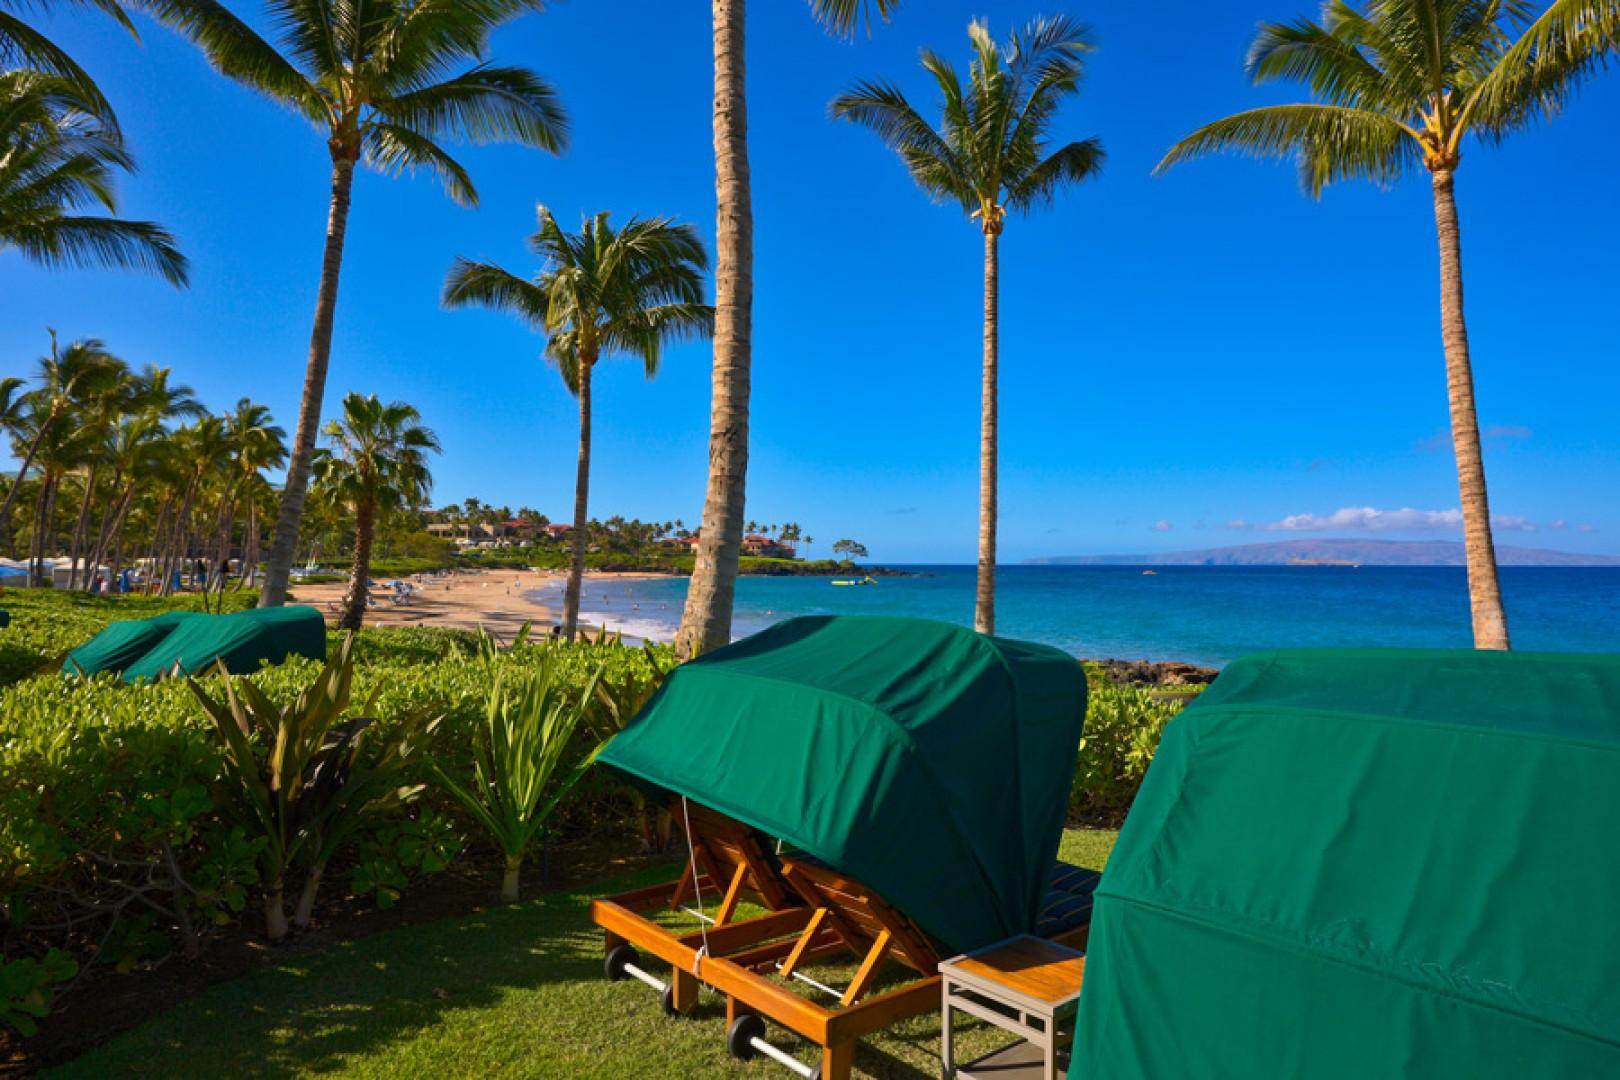 Complimentary oceanfront personal Casabella chaise lounge chairs for guests of Wailea Beach Villas.